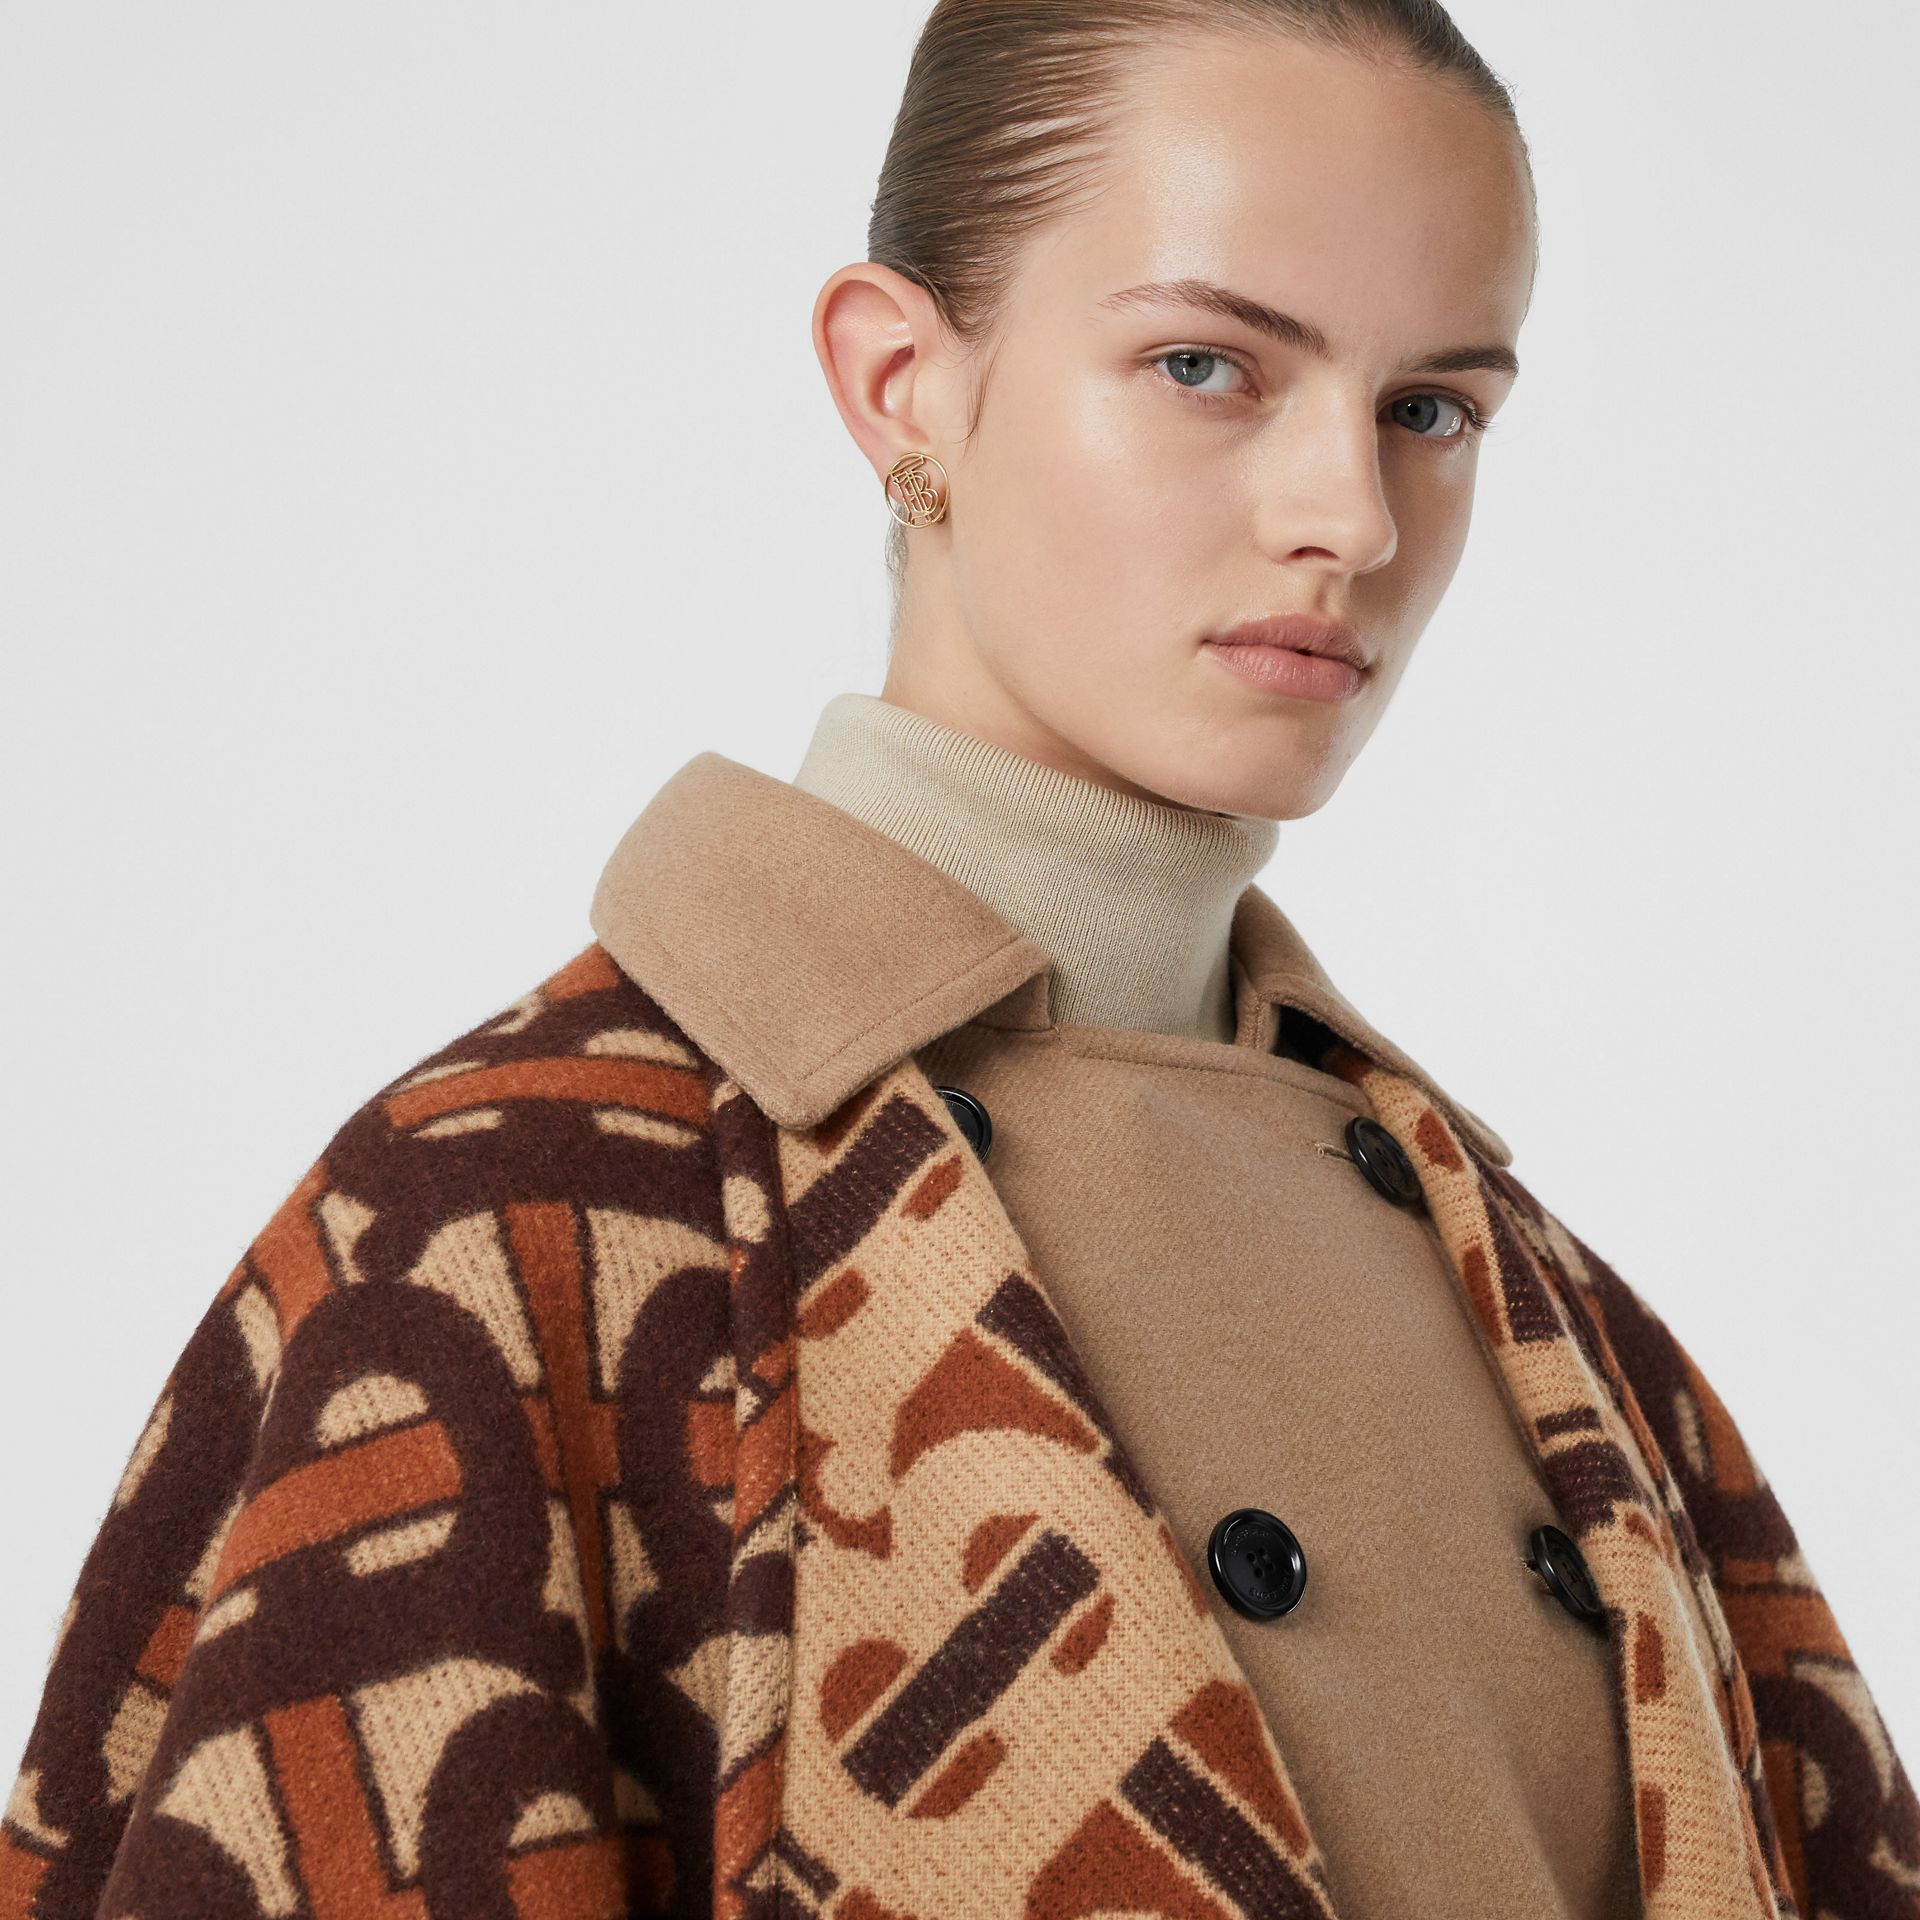 Monogram Merino Wool Cashmere Jacquard Cape in Dark Mocha - Women | Burberry Canada - gallery image 1